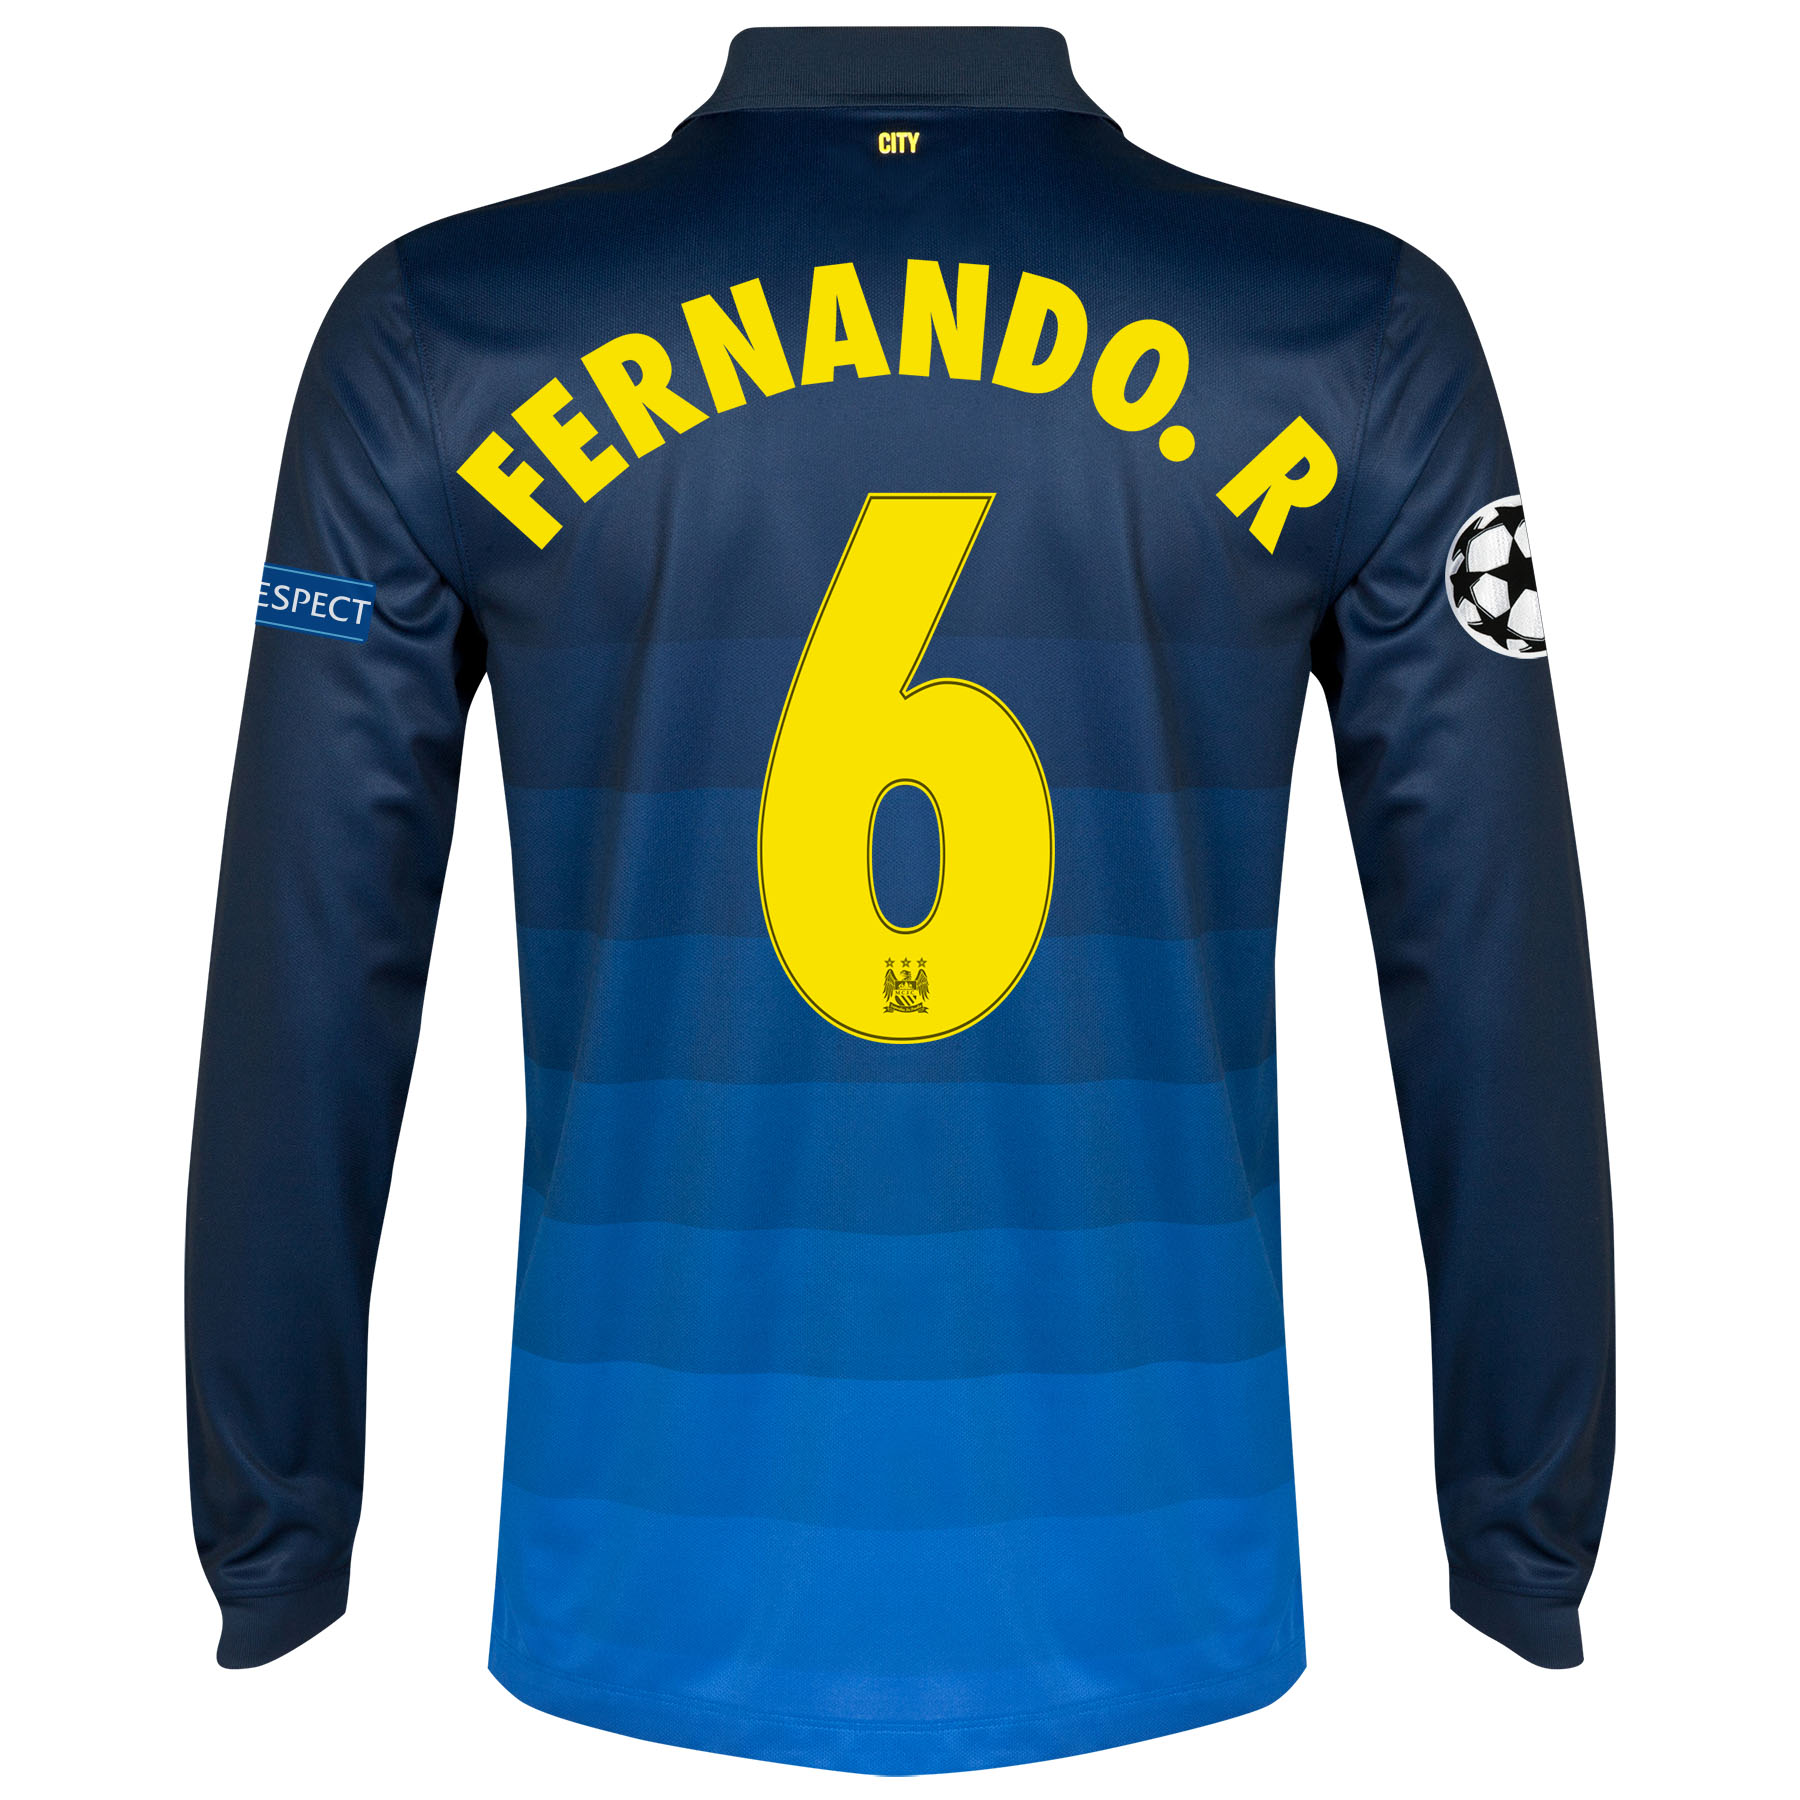 Manchester City UEFA Champions League Away Shirt 2014/15 - Long Sleeve with Fernando. R 6 printing